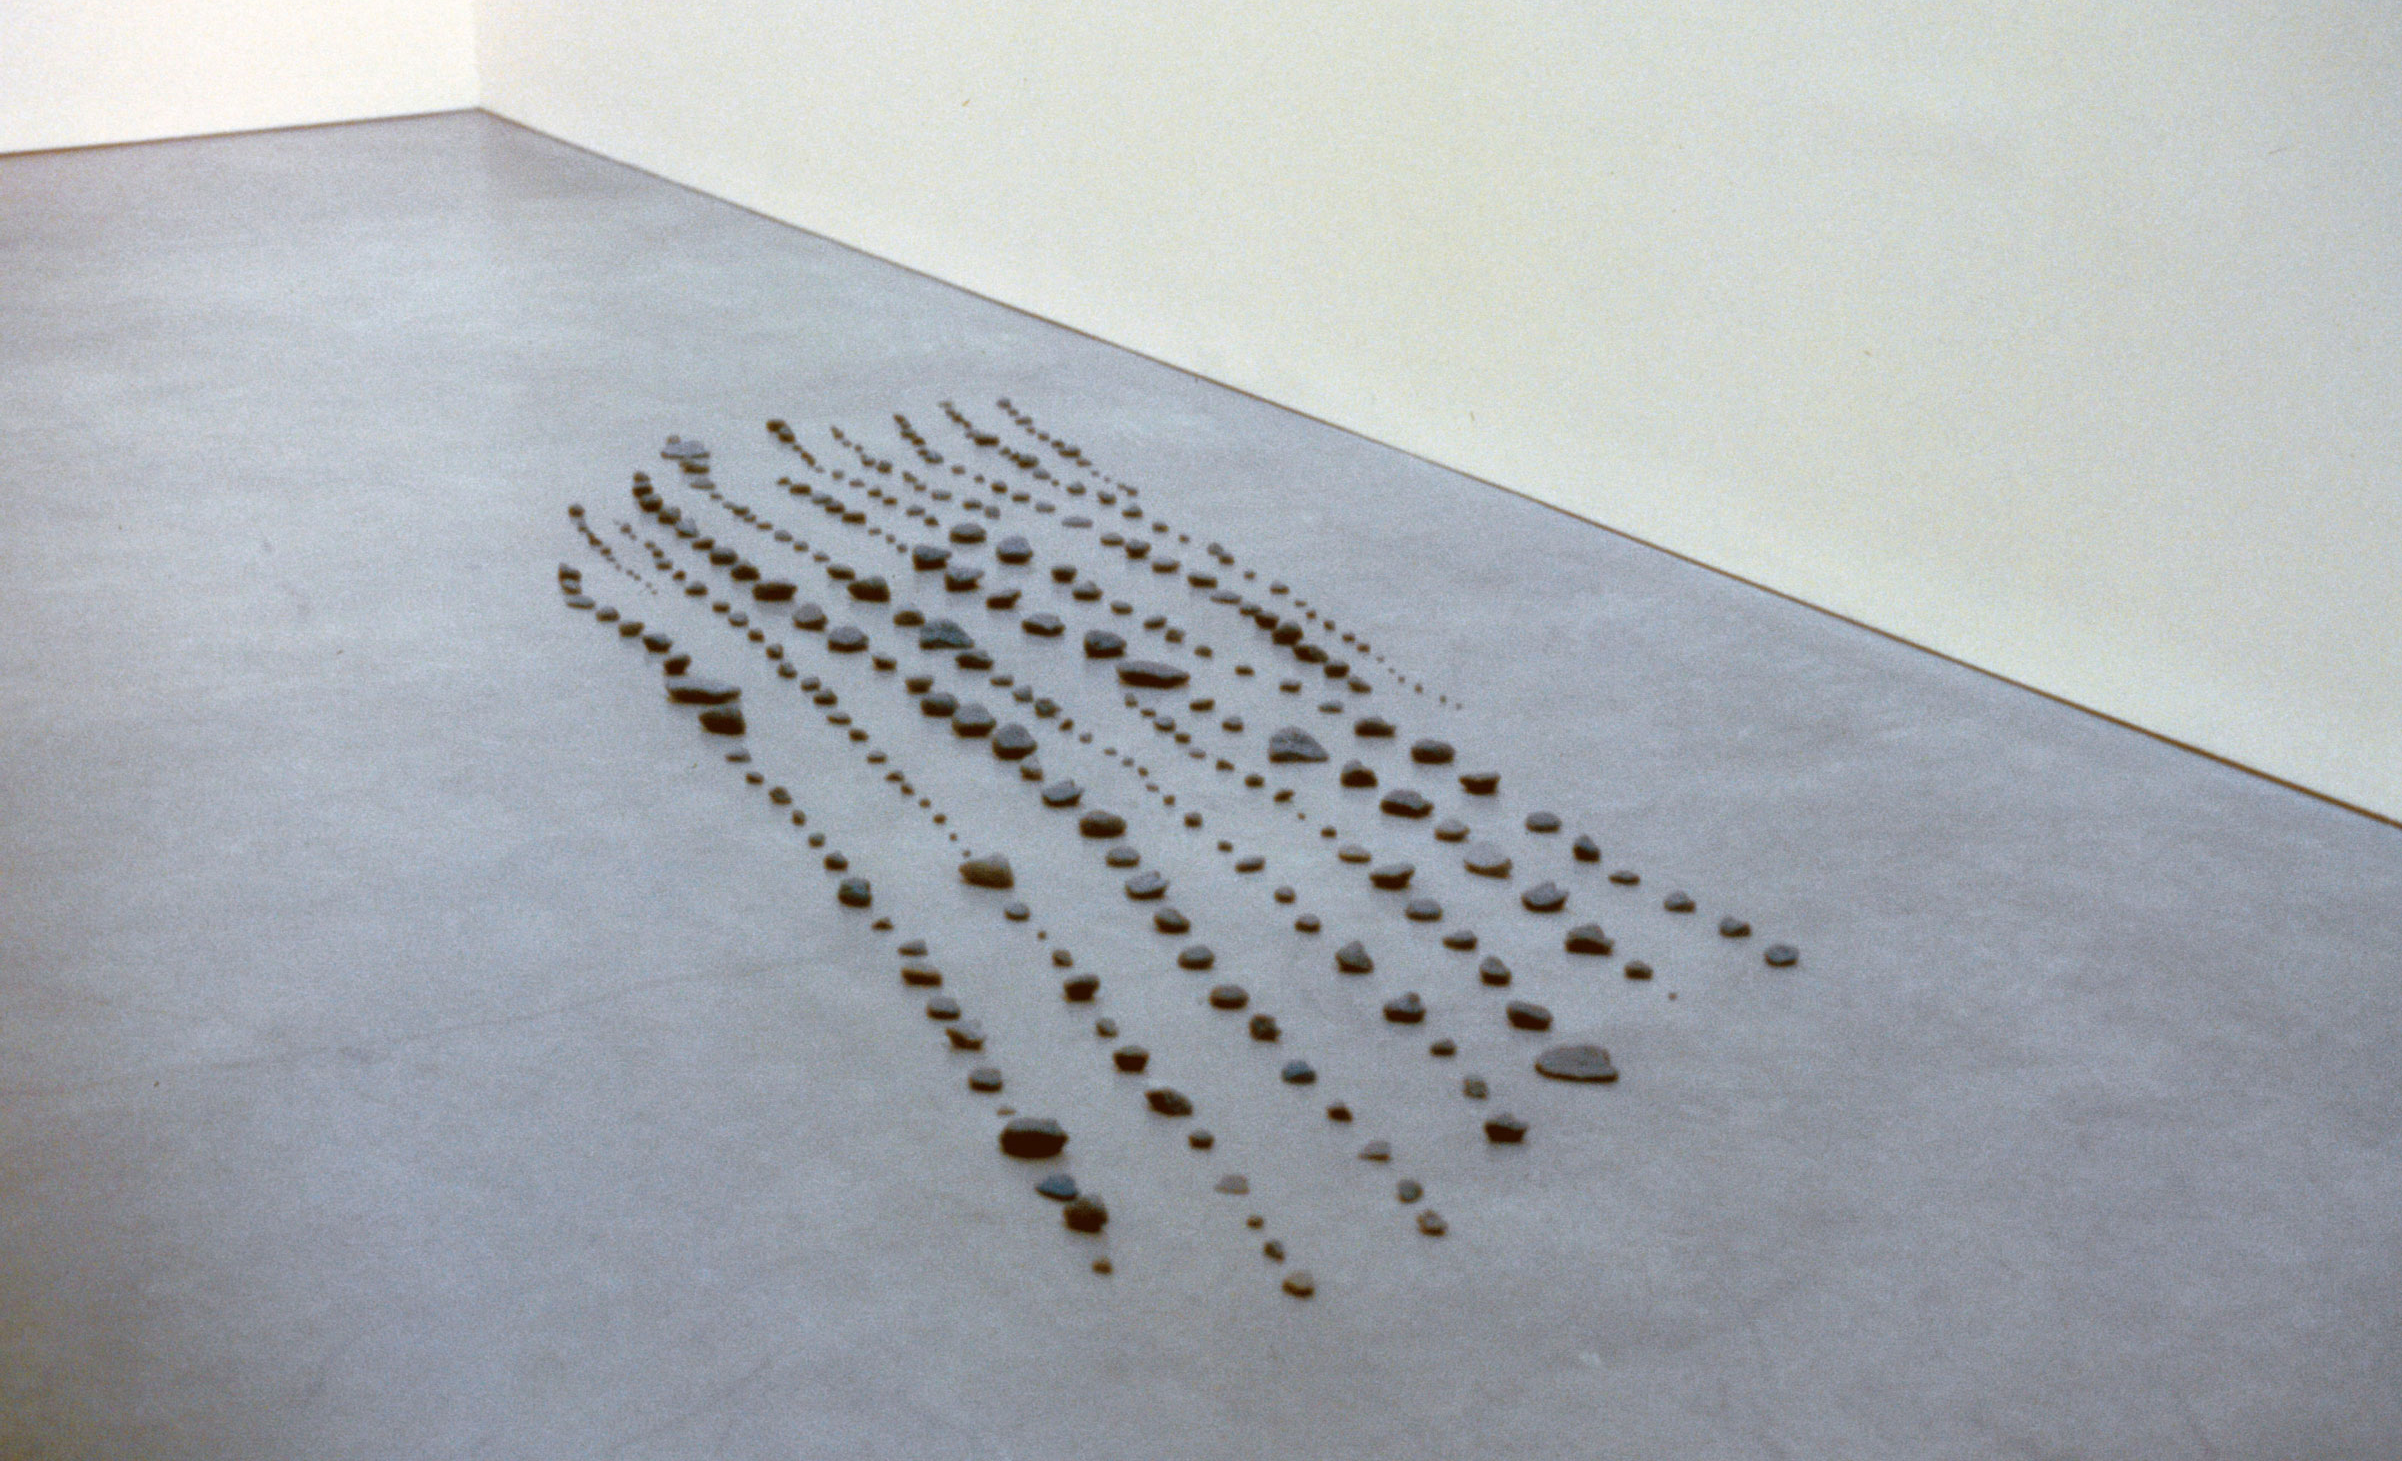 """Installation View, """"Trace"""", curated by Ian Berry,Bard Center for Curatorial Studies, Bard College, Annandale-on-Hudson, New York"""